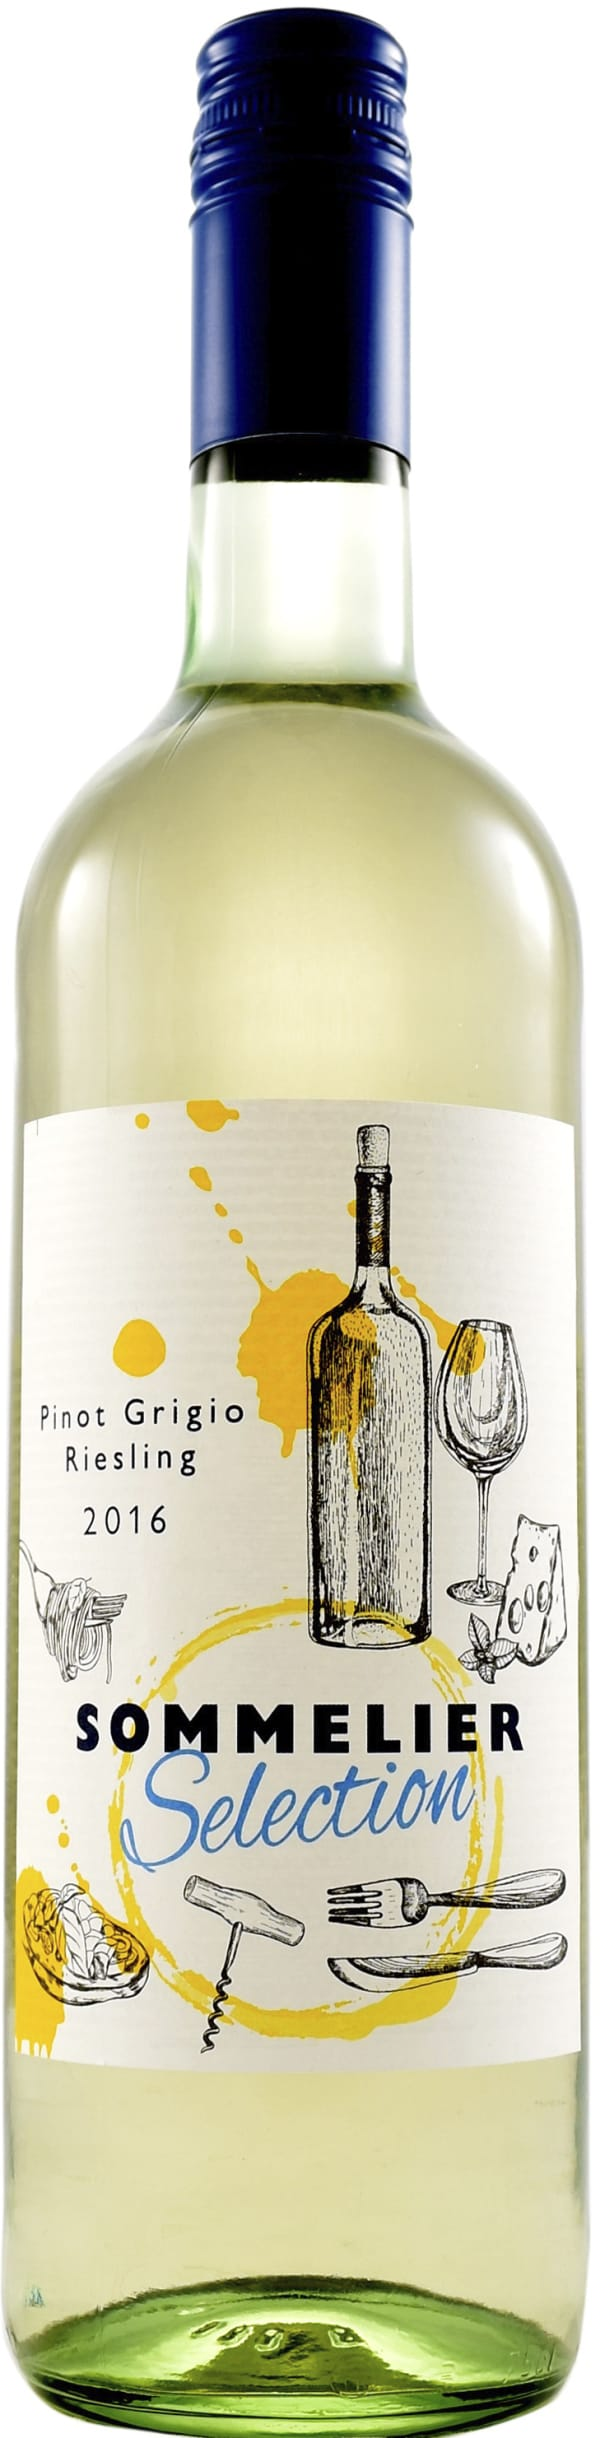 Sommelier Selection Pinot Grigio Riesling 2016